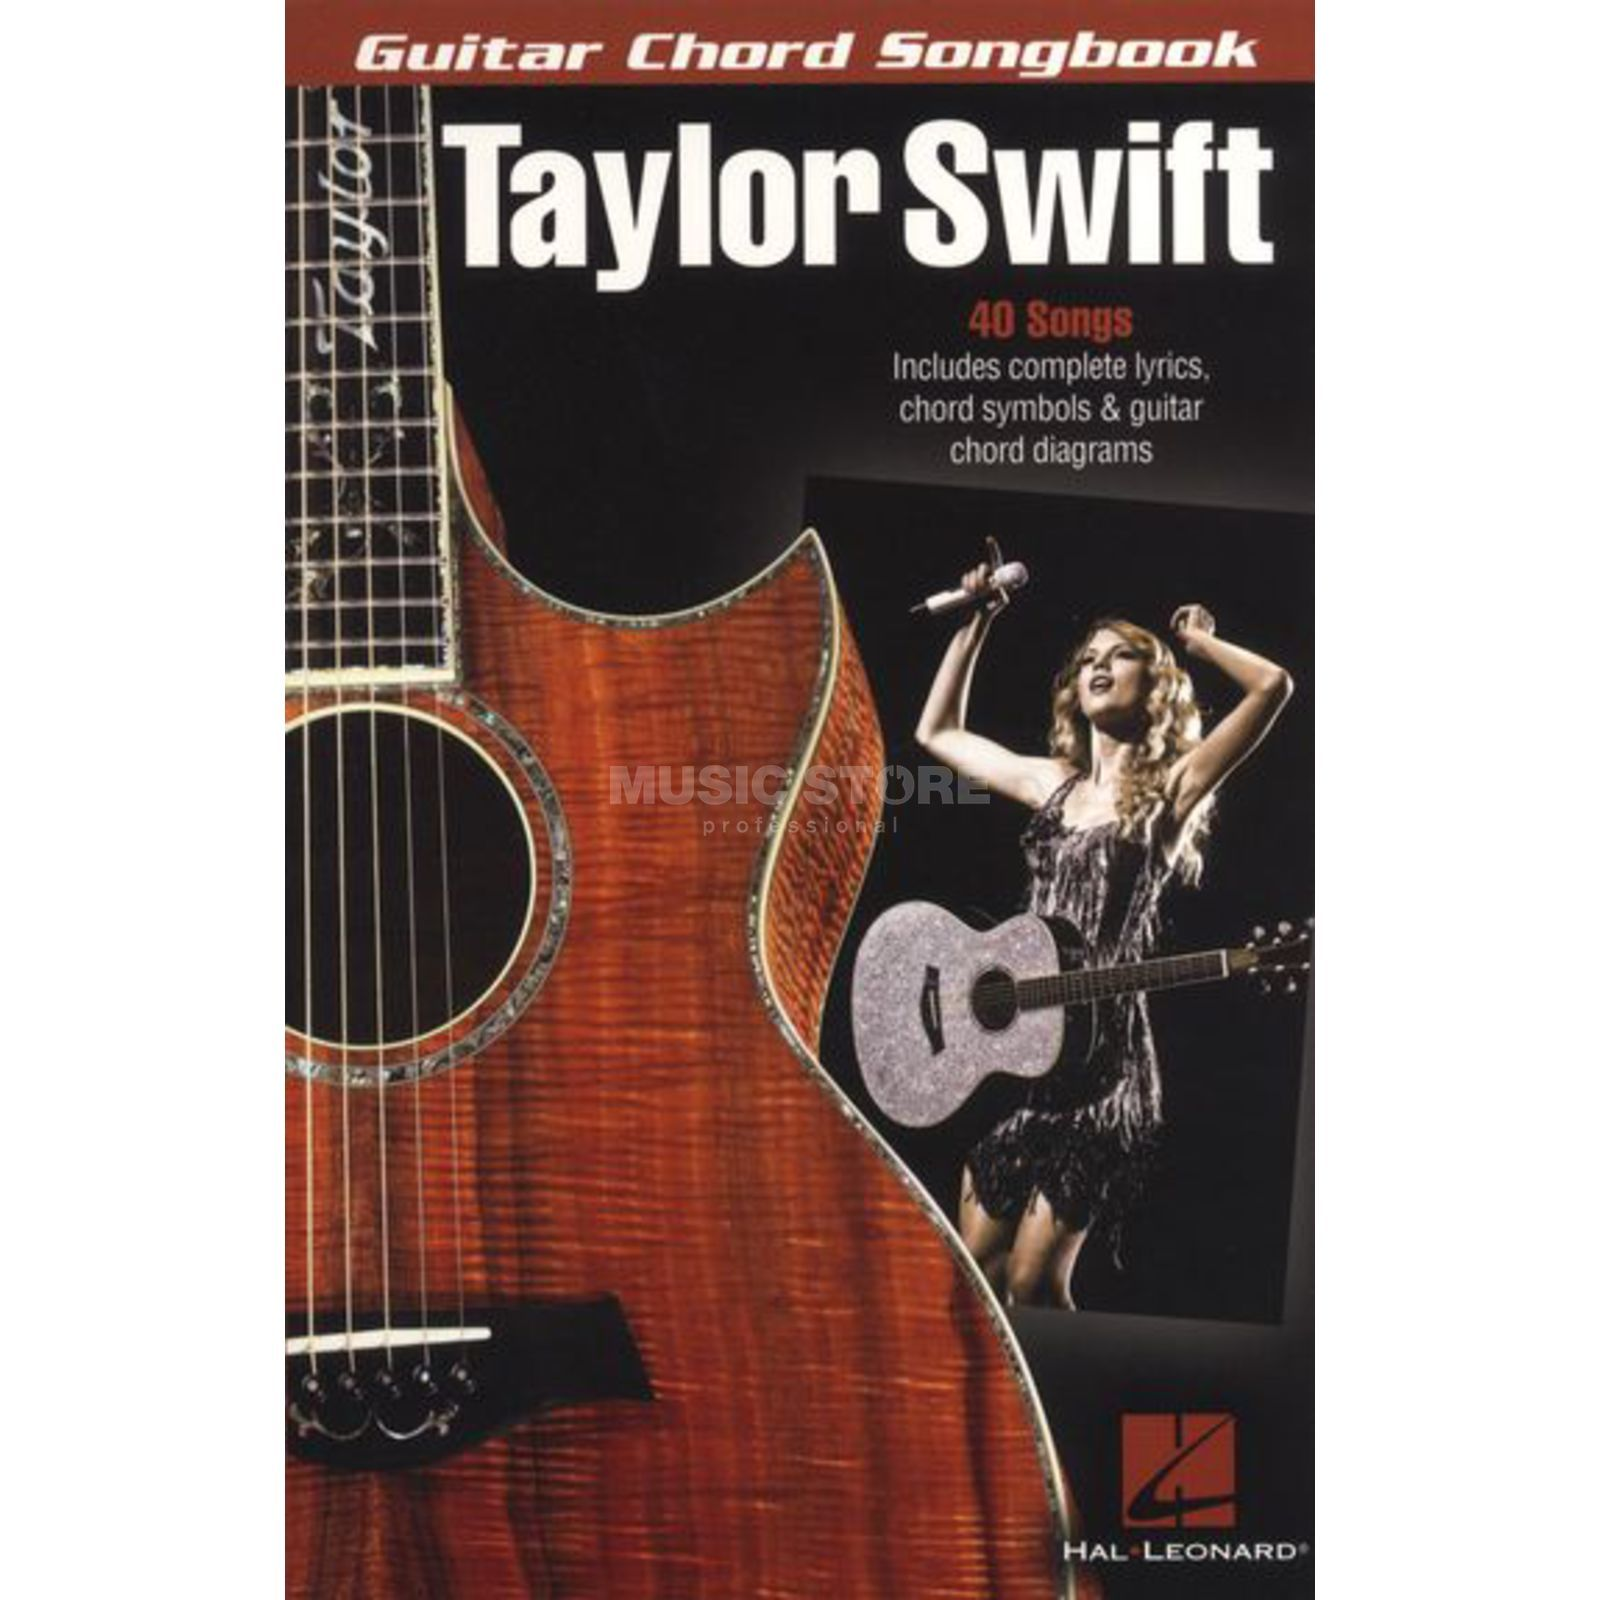 Hal Leonard Taylor Swift Guitar Chord Songbook